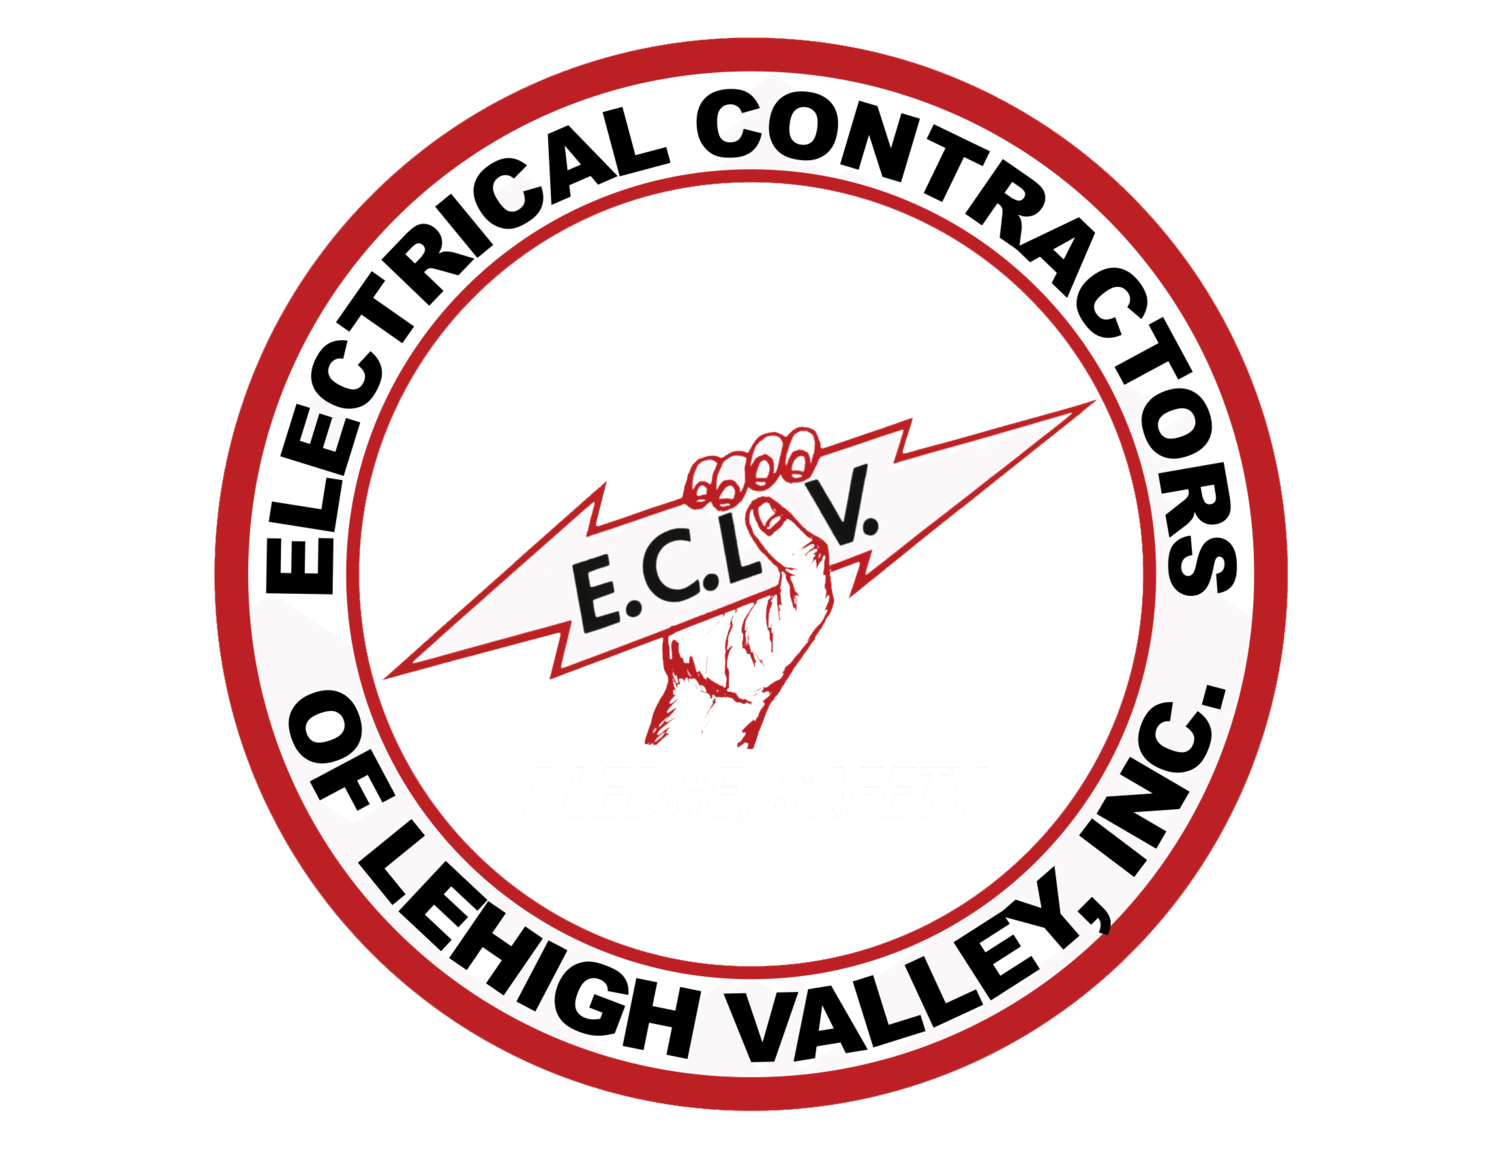 The Electrical Contractors of the Lehigh Valley